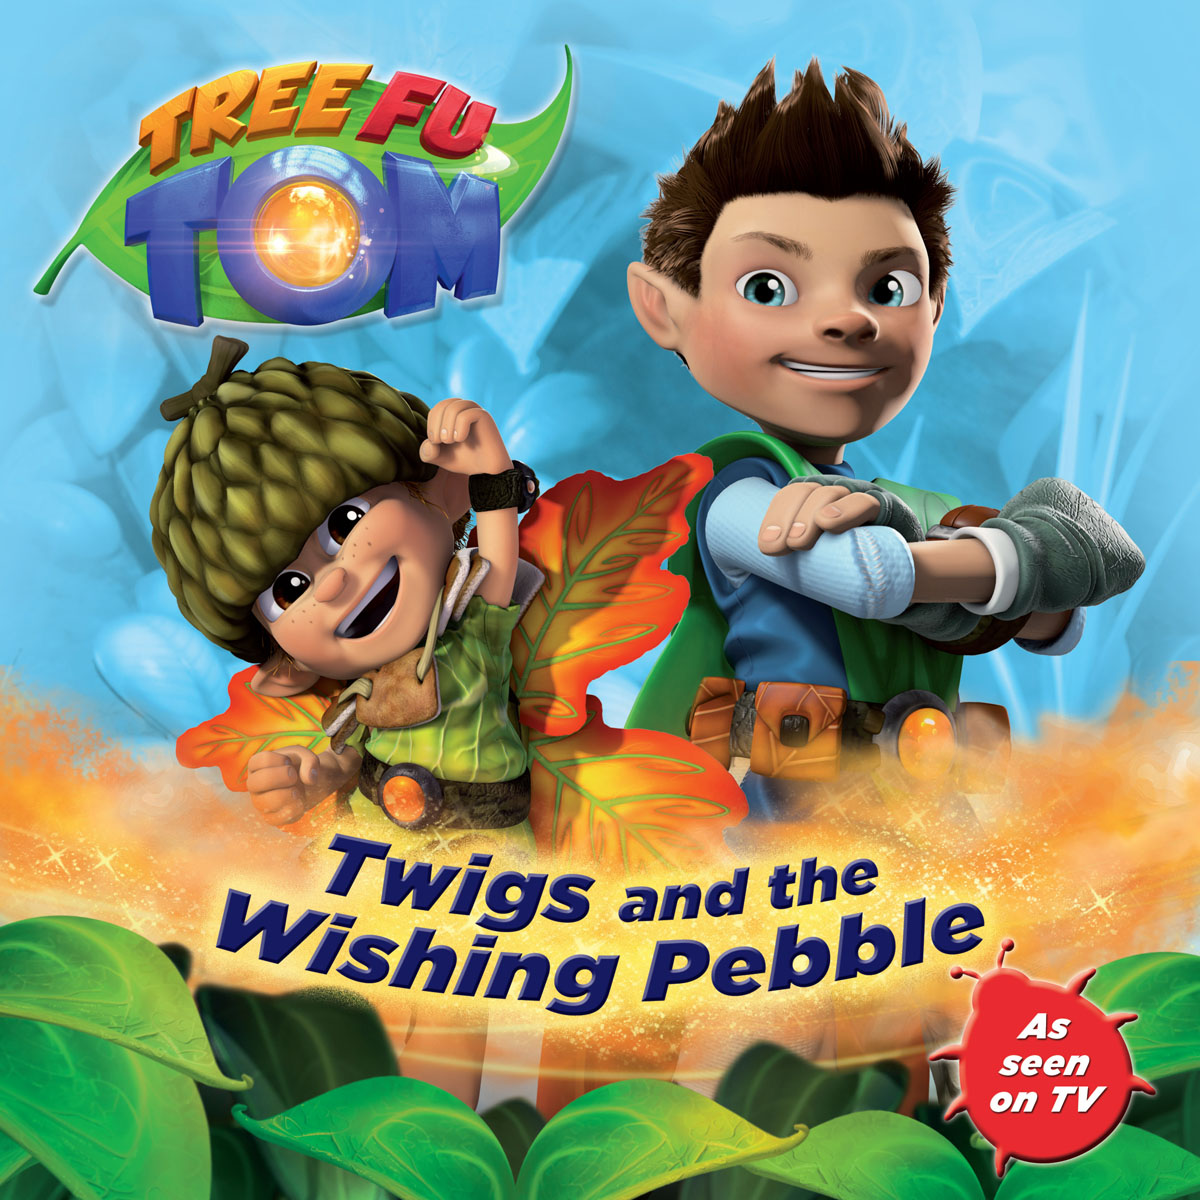 Tree Fu Tom: Twigs and the Wishing Pebble wish for a fish